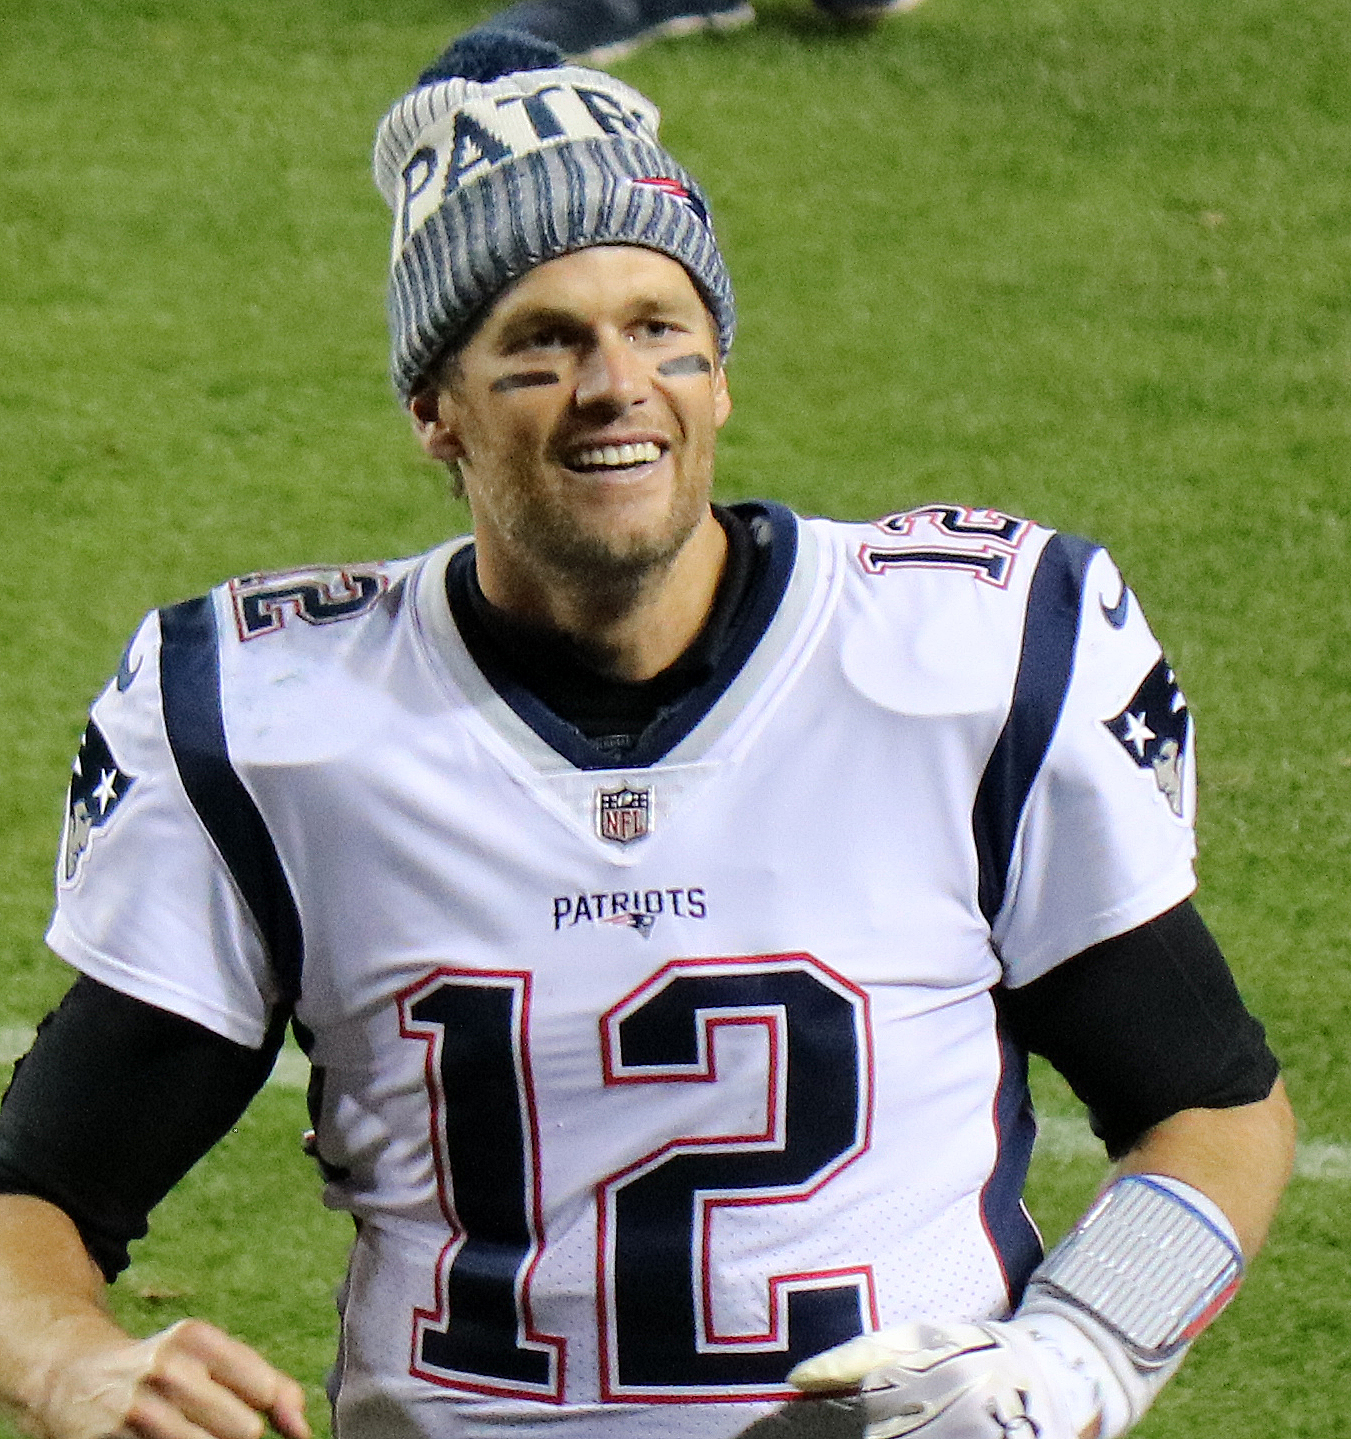 Tom Brady, the New England Patriots' quarterback prepares for what could be his 6th Super Bowl win. Photo courtesy of Wikipedia Commons.